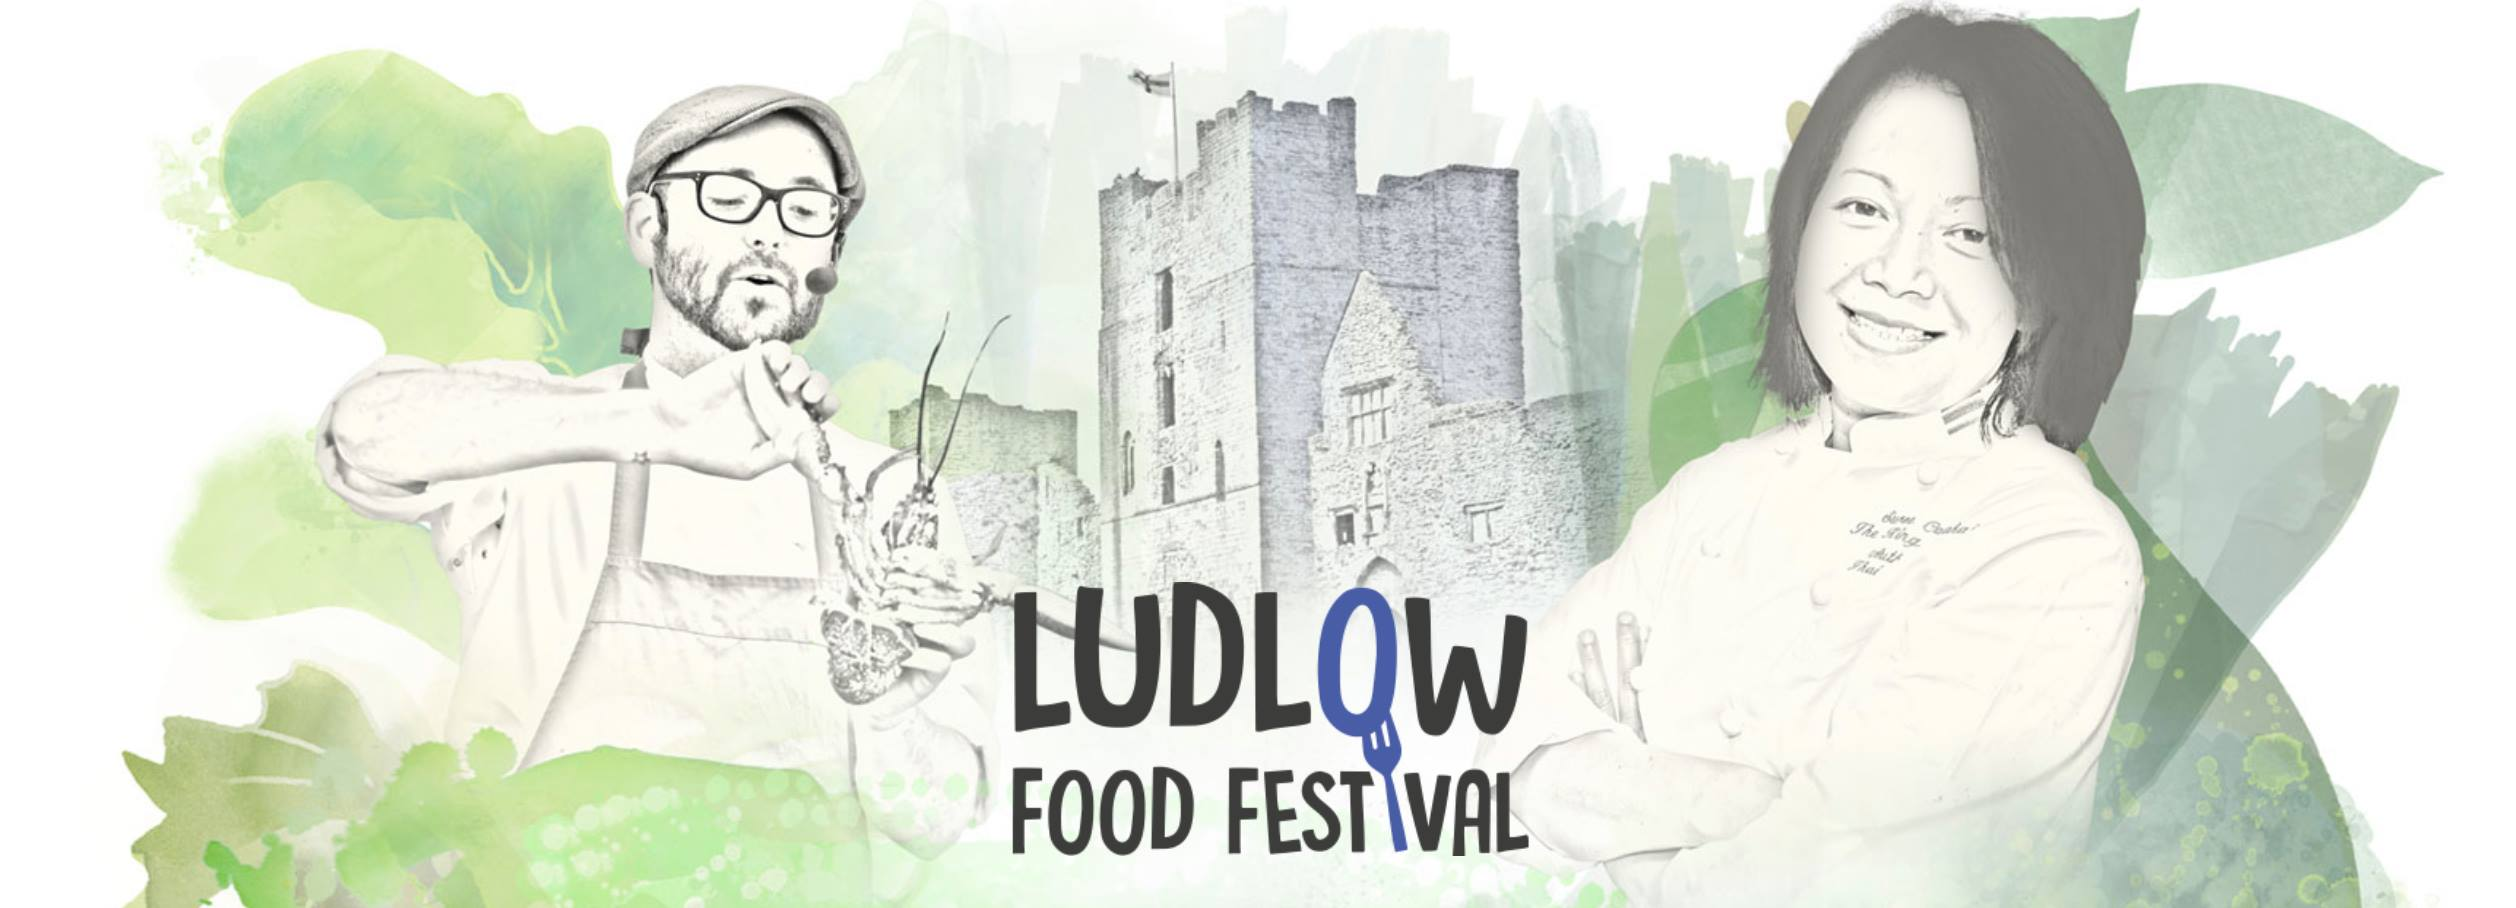 Ludlow Food Festival Trade Day